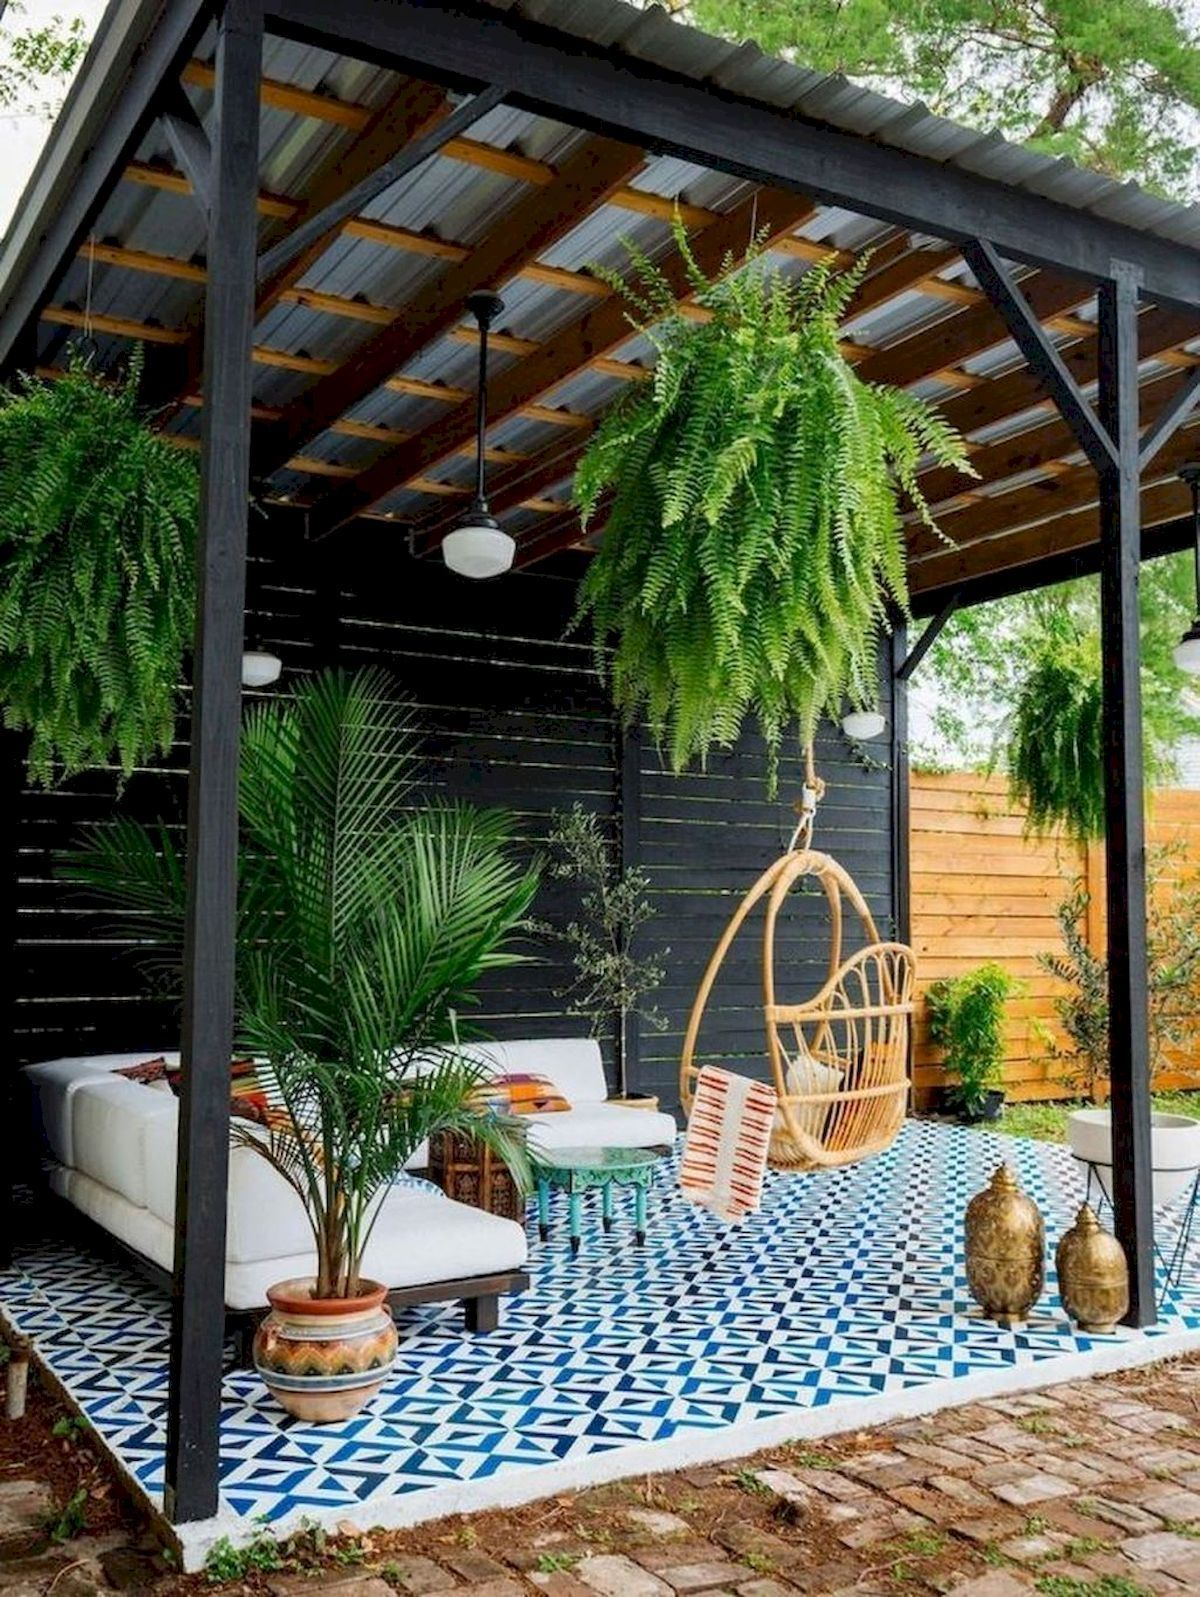 52 Most Creative Backyard Patio Ideas on A Budget (22 in ... on Creative Patio Designs id=18130